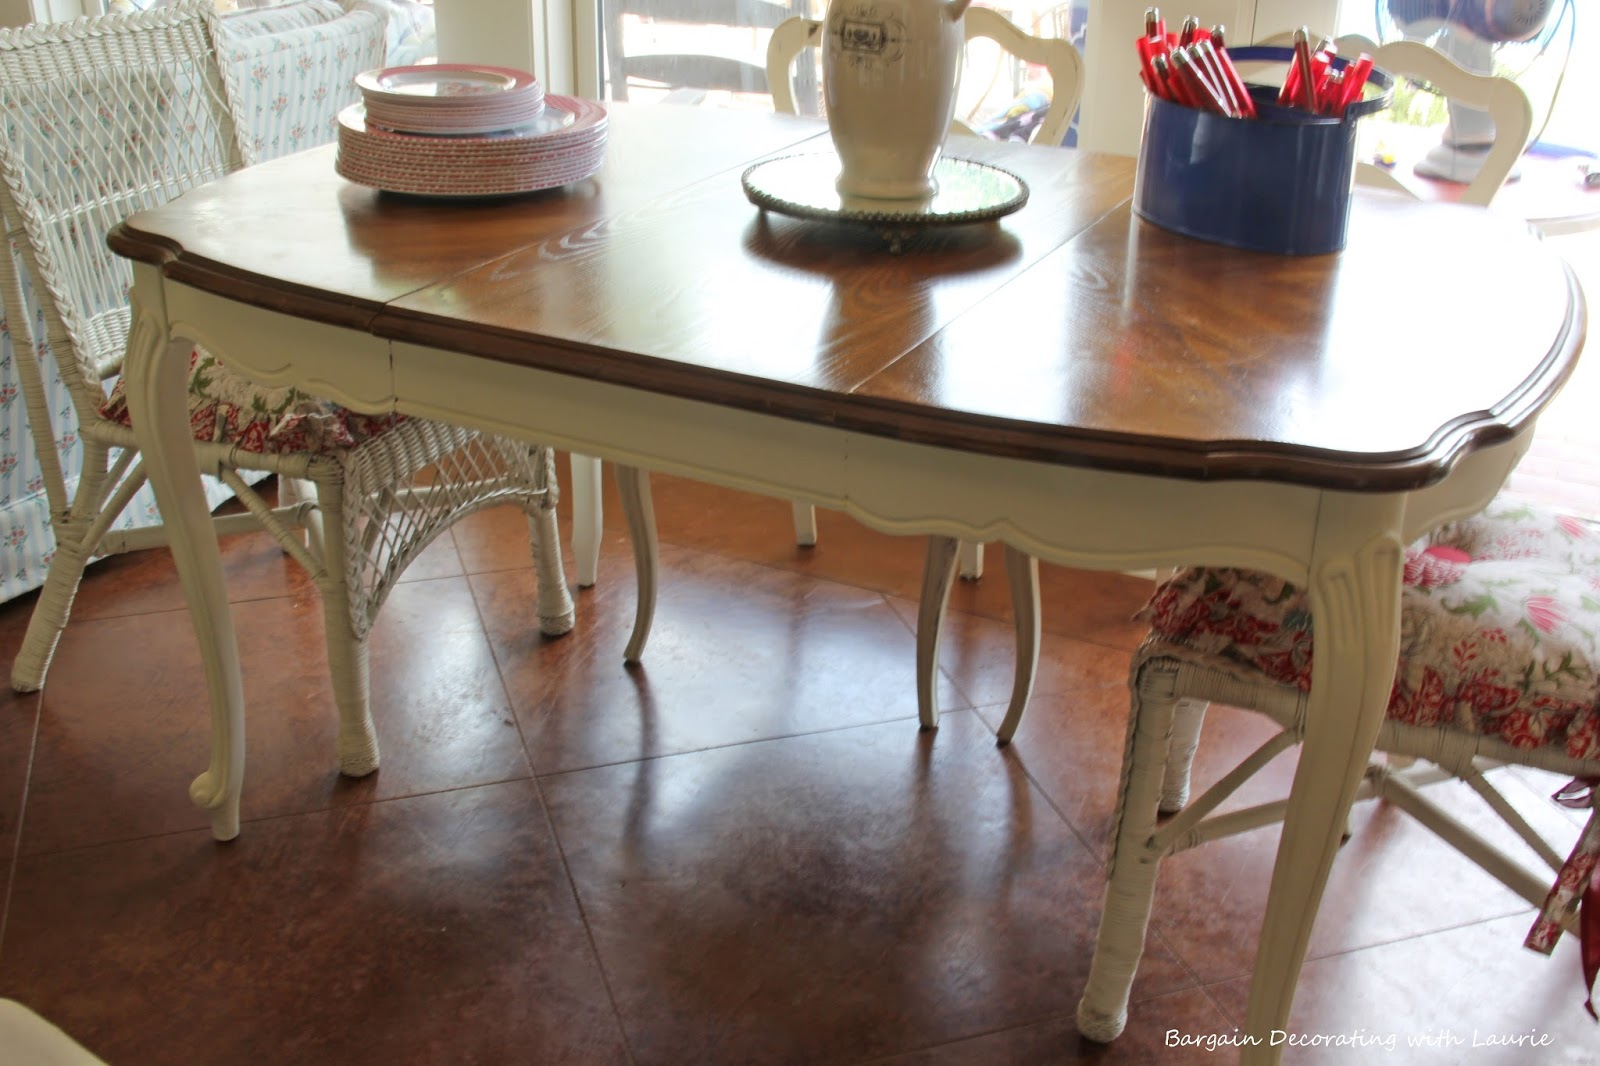 Marvelous Painted Table Legs Bargain Decorating With Laurie